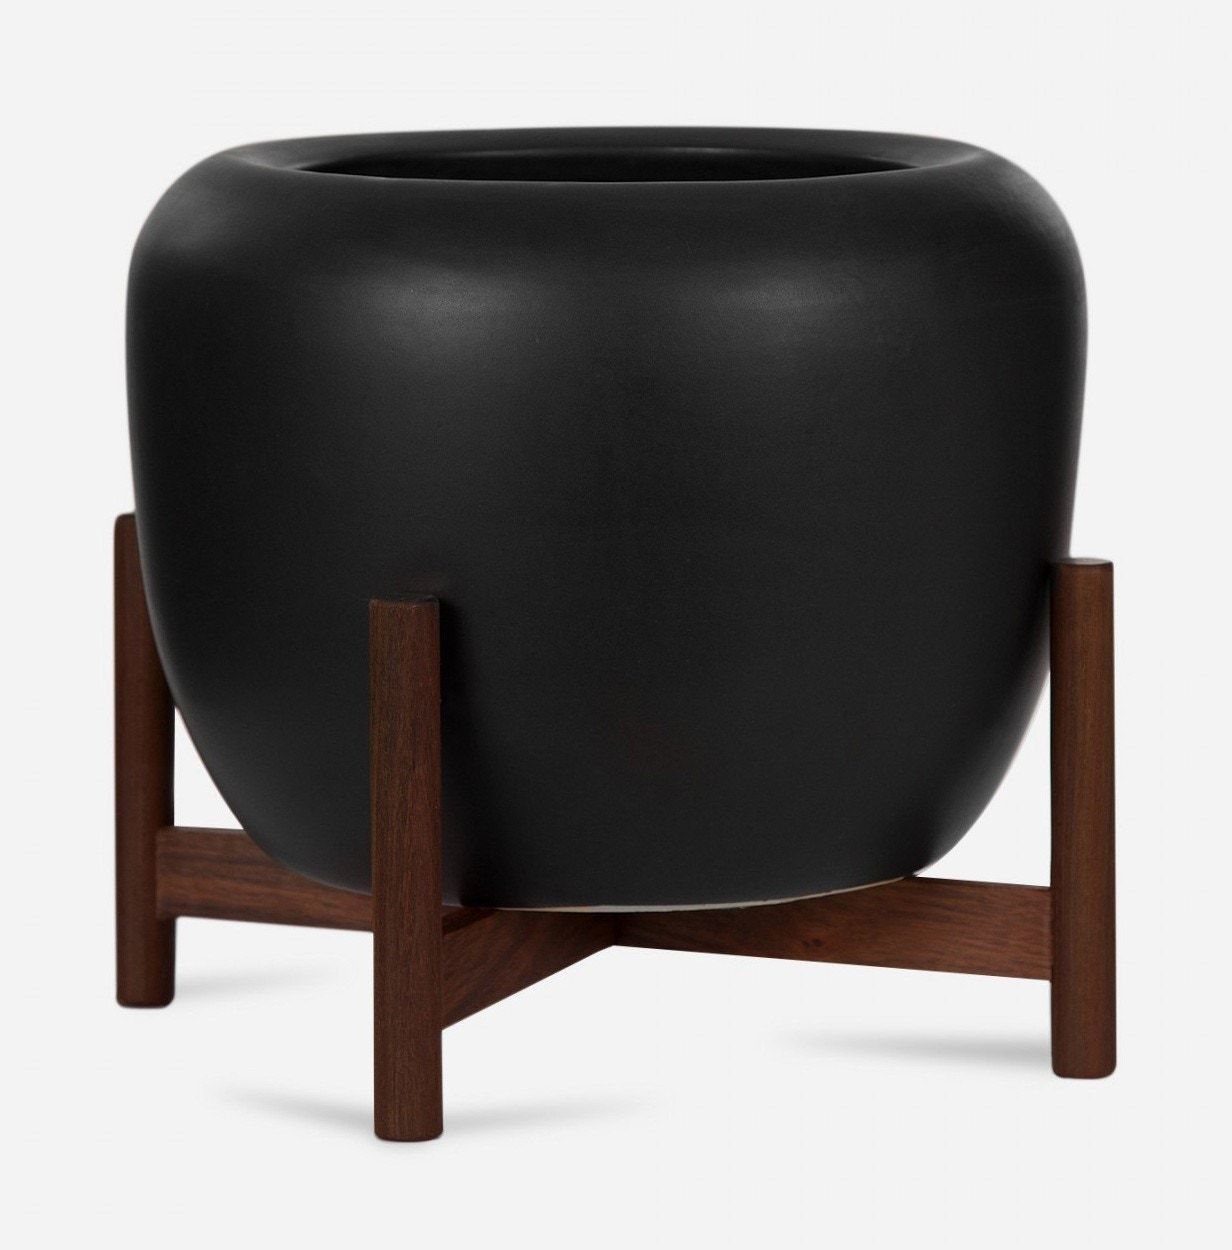 (Planter)Modernica Case Study® Ceramics Table Top Drum With Stand (Planter)